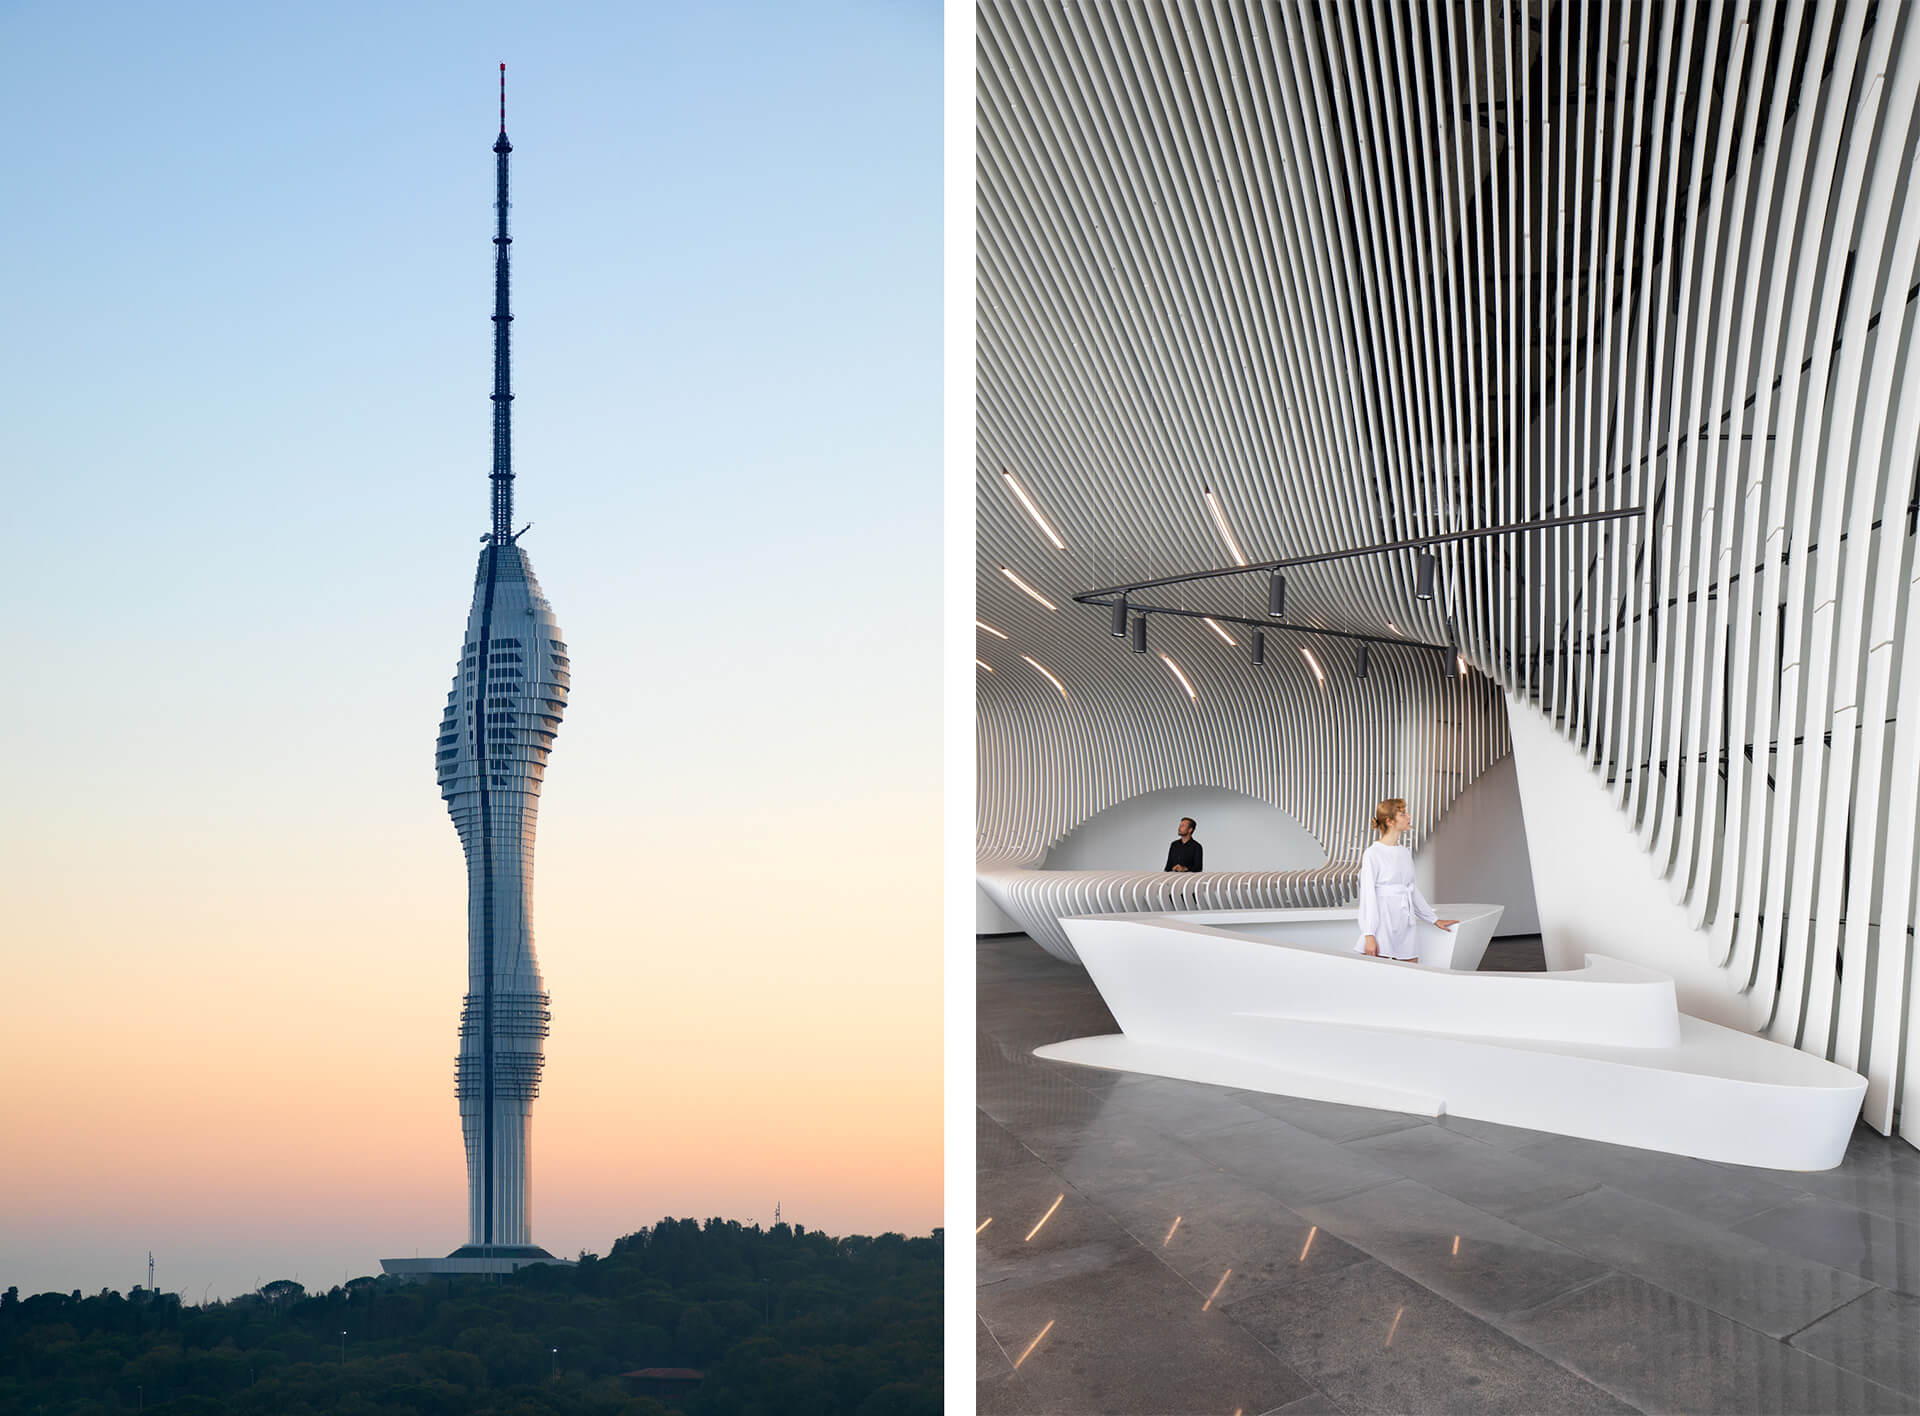 The interior of the space expresses the same dynamic movement along its surface as the tower | Istanbul Camlica TV and Radio Tower | Melike Altinisik Architects | STIRworld